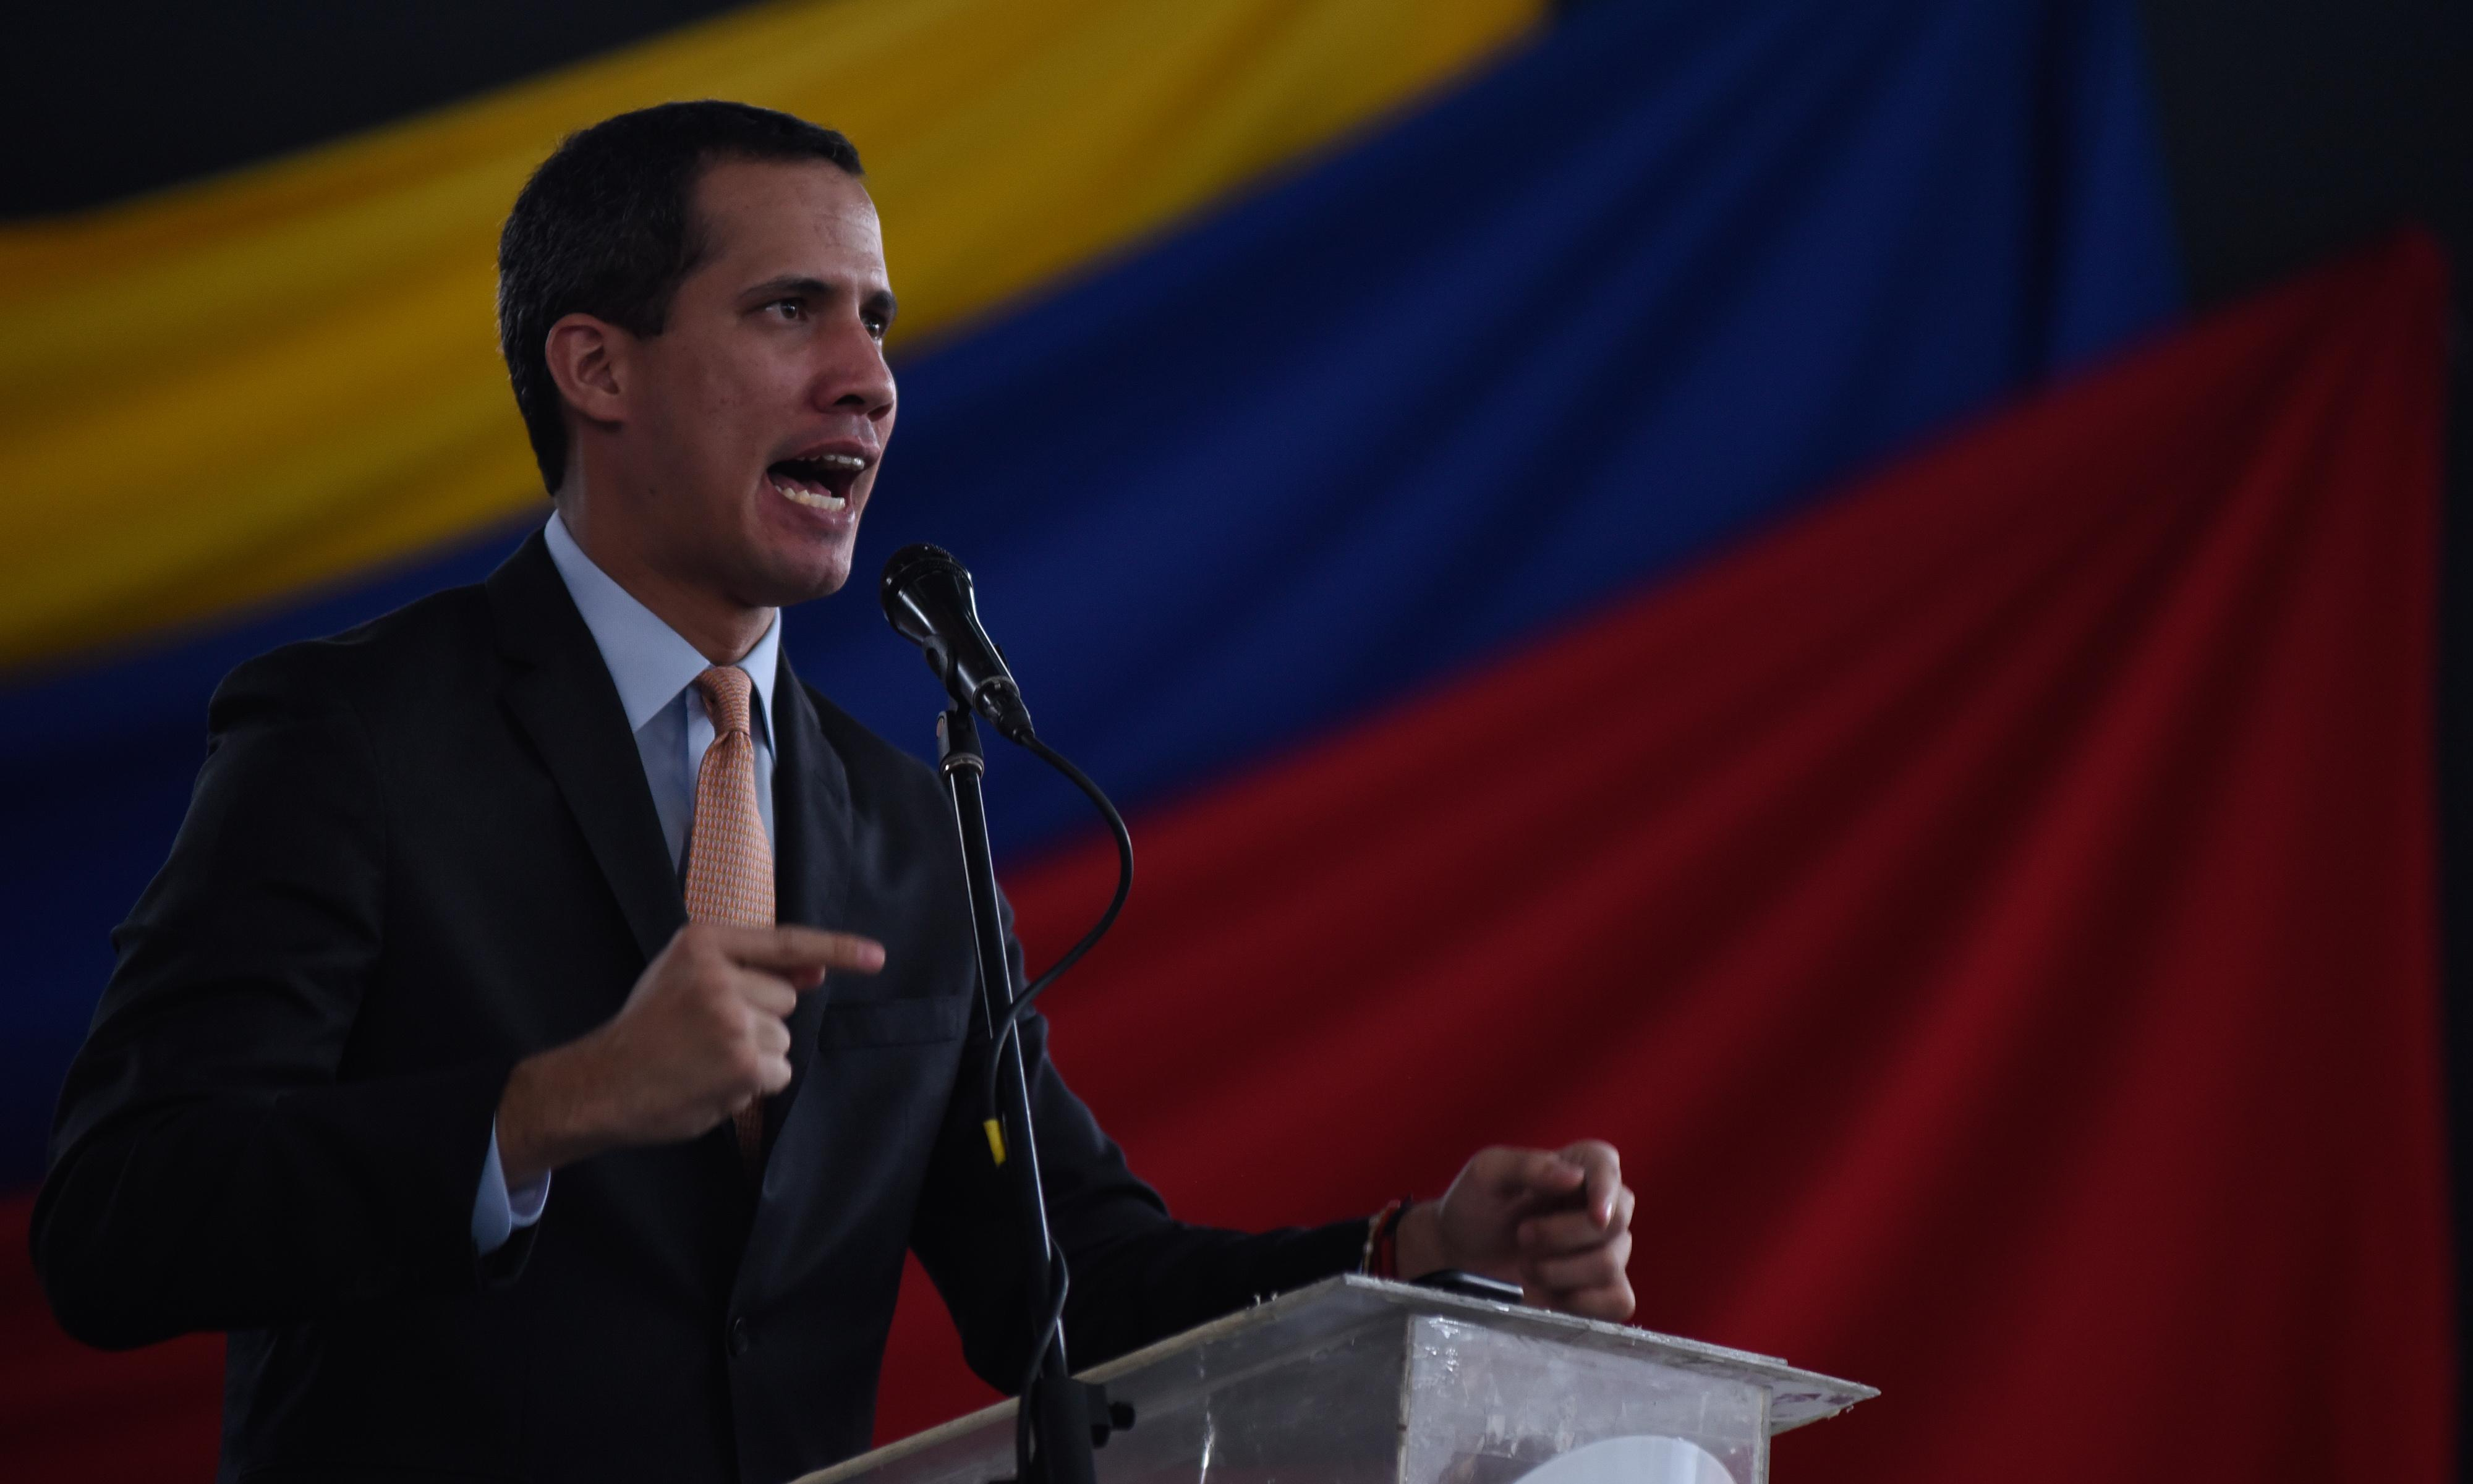 A year on, Juan Guaidó's attempt at regime change in Venezuela has stalled